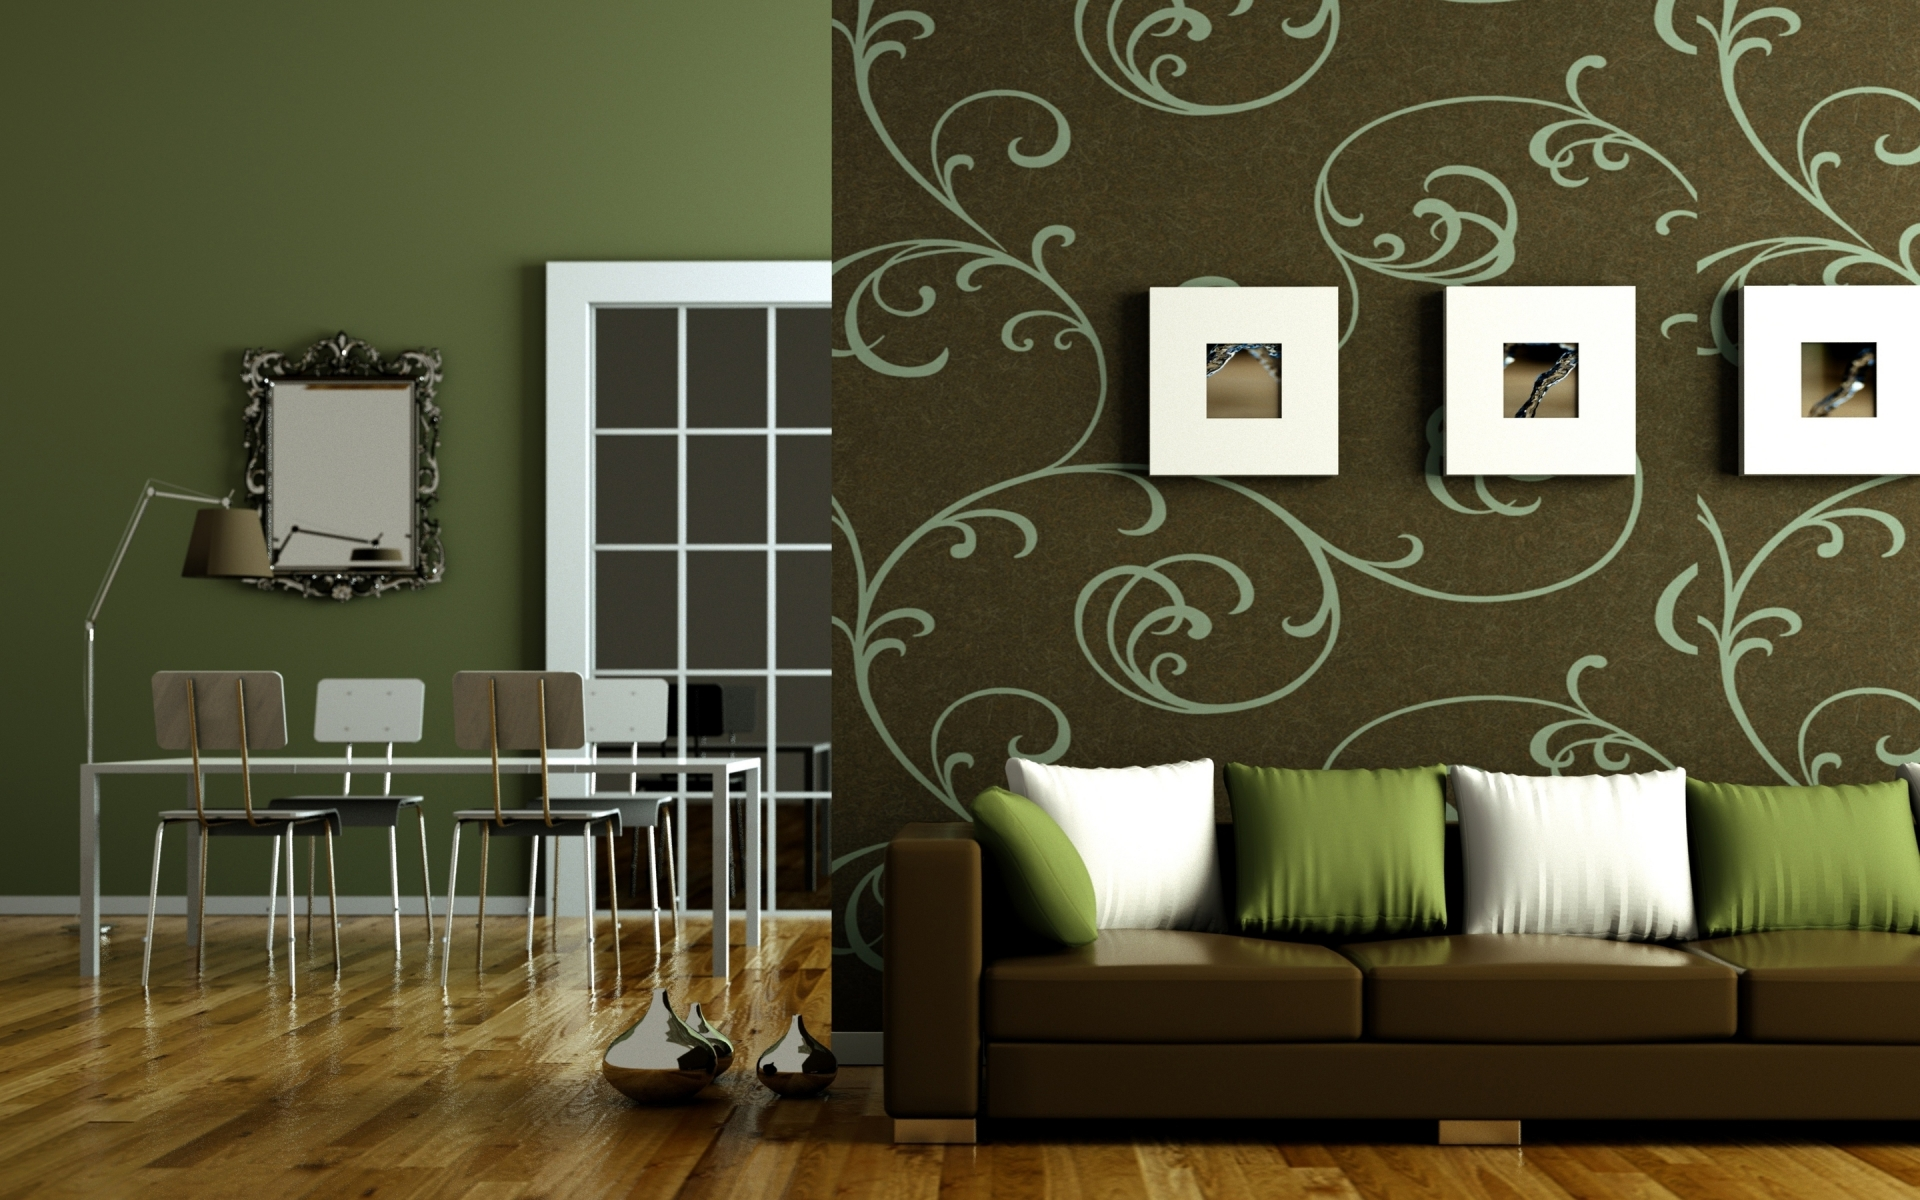 Wall Decorating 101 Top 3 Things To Know Sophia Designs